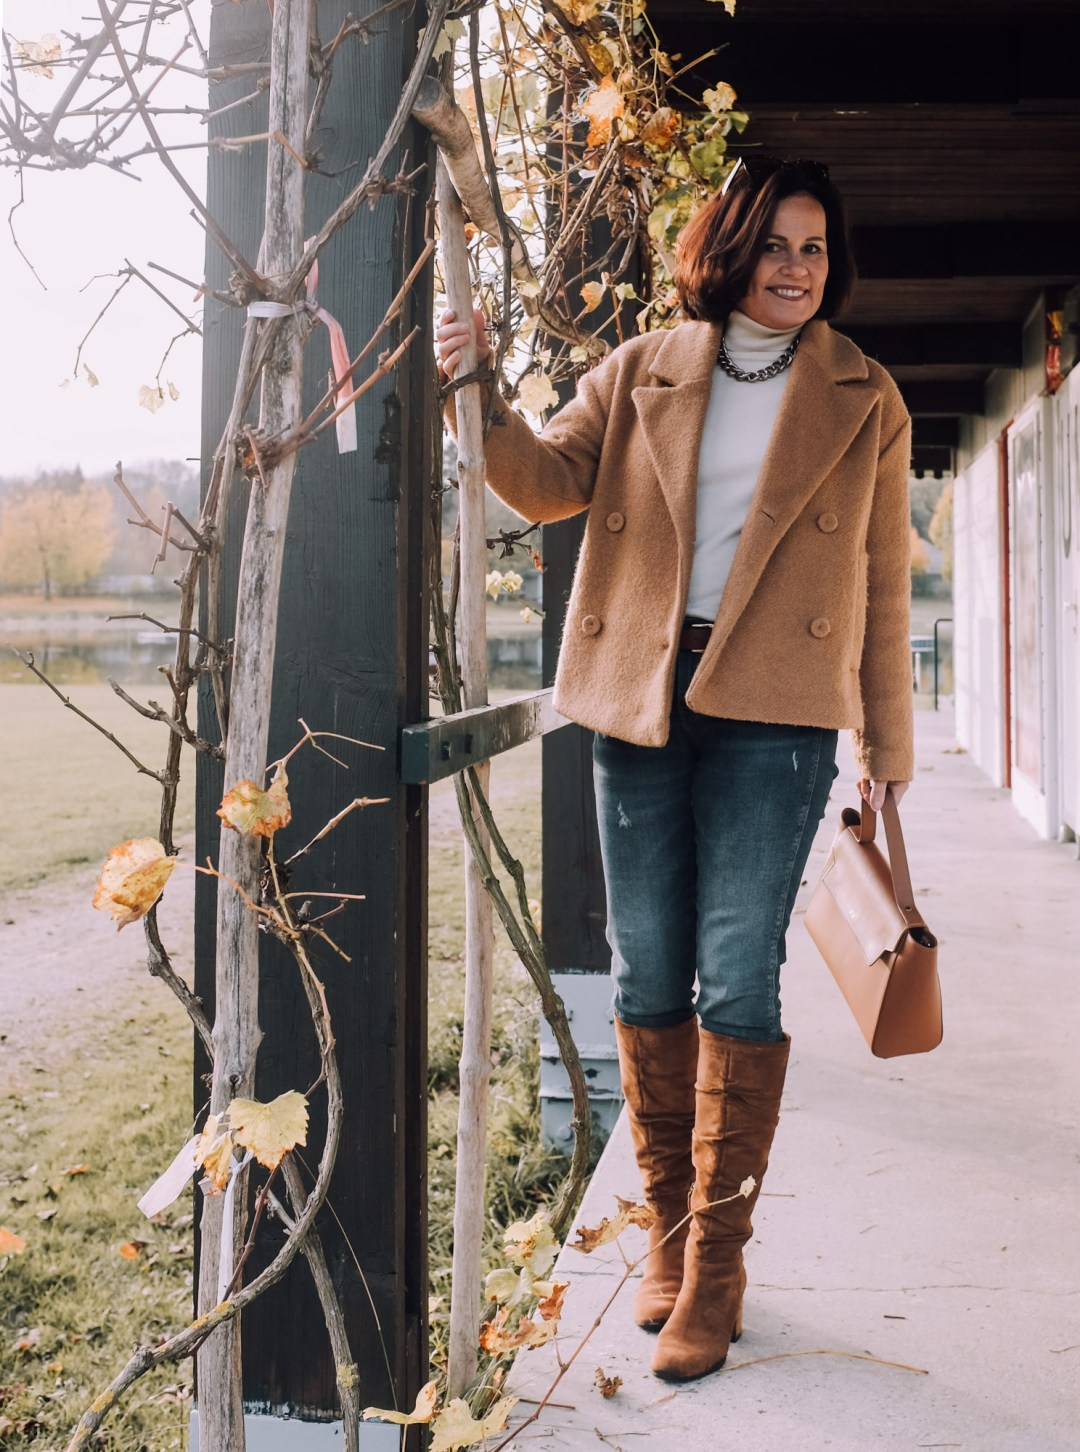 Inastil, Herbstmode, Fallfashion, Styleover50, UE50blogger, Fashionblogger, Modeblogger, Styleblogger, Stiefel, Boots, Camel, Stilberatung, Modeberatung,_-13